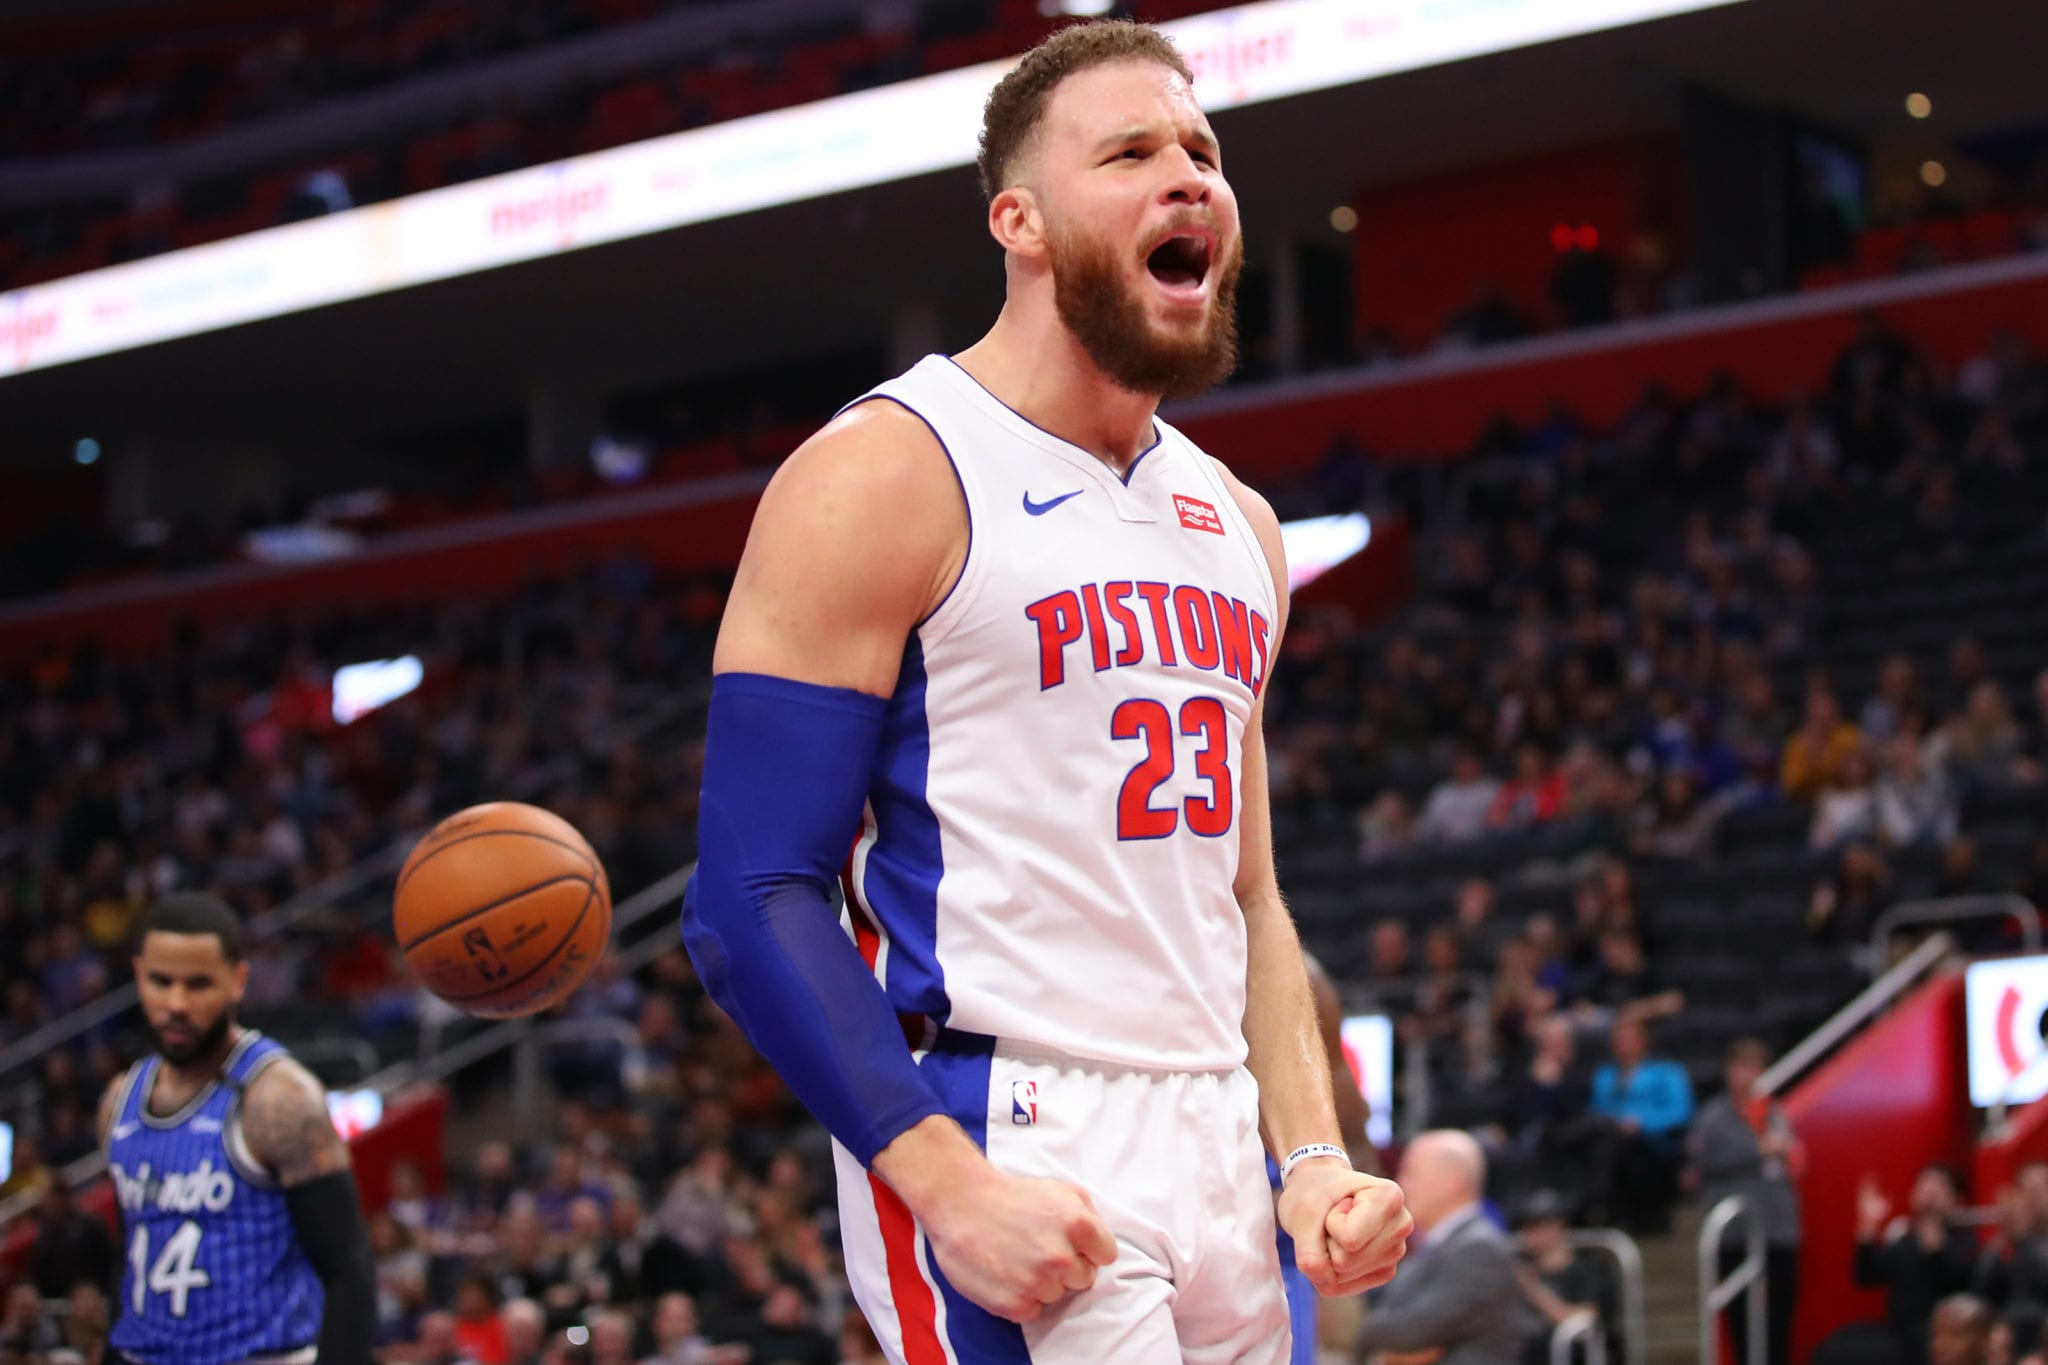 Blake Griffin Is Expected to Sign With Brooklyn Nets for shot at title